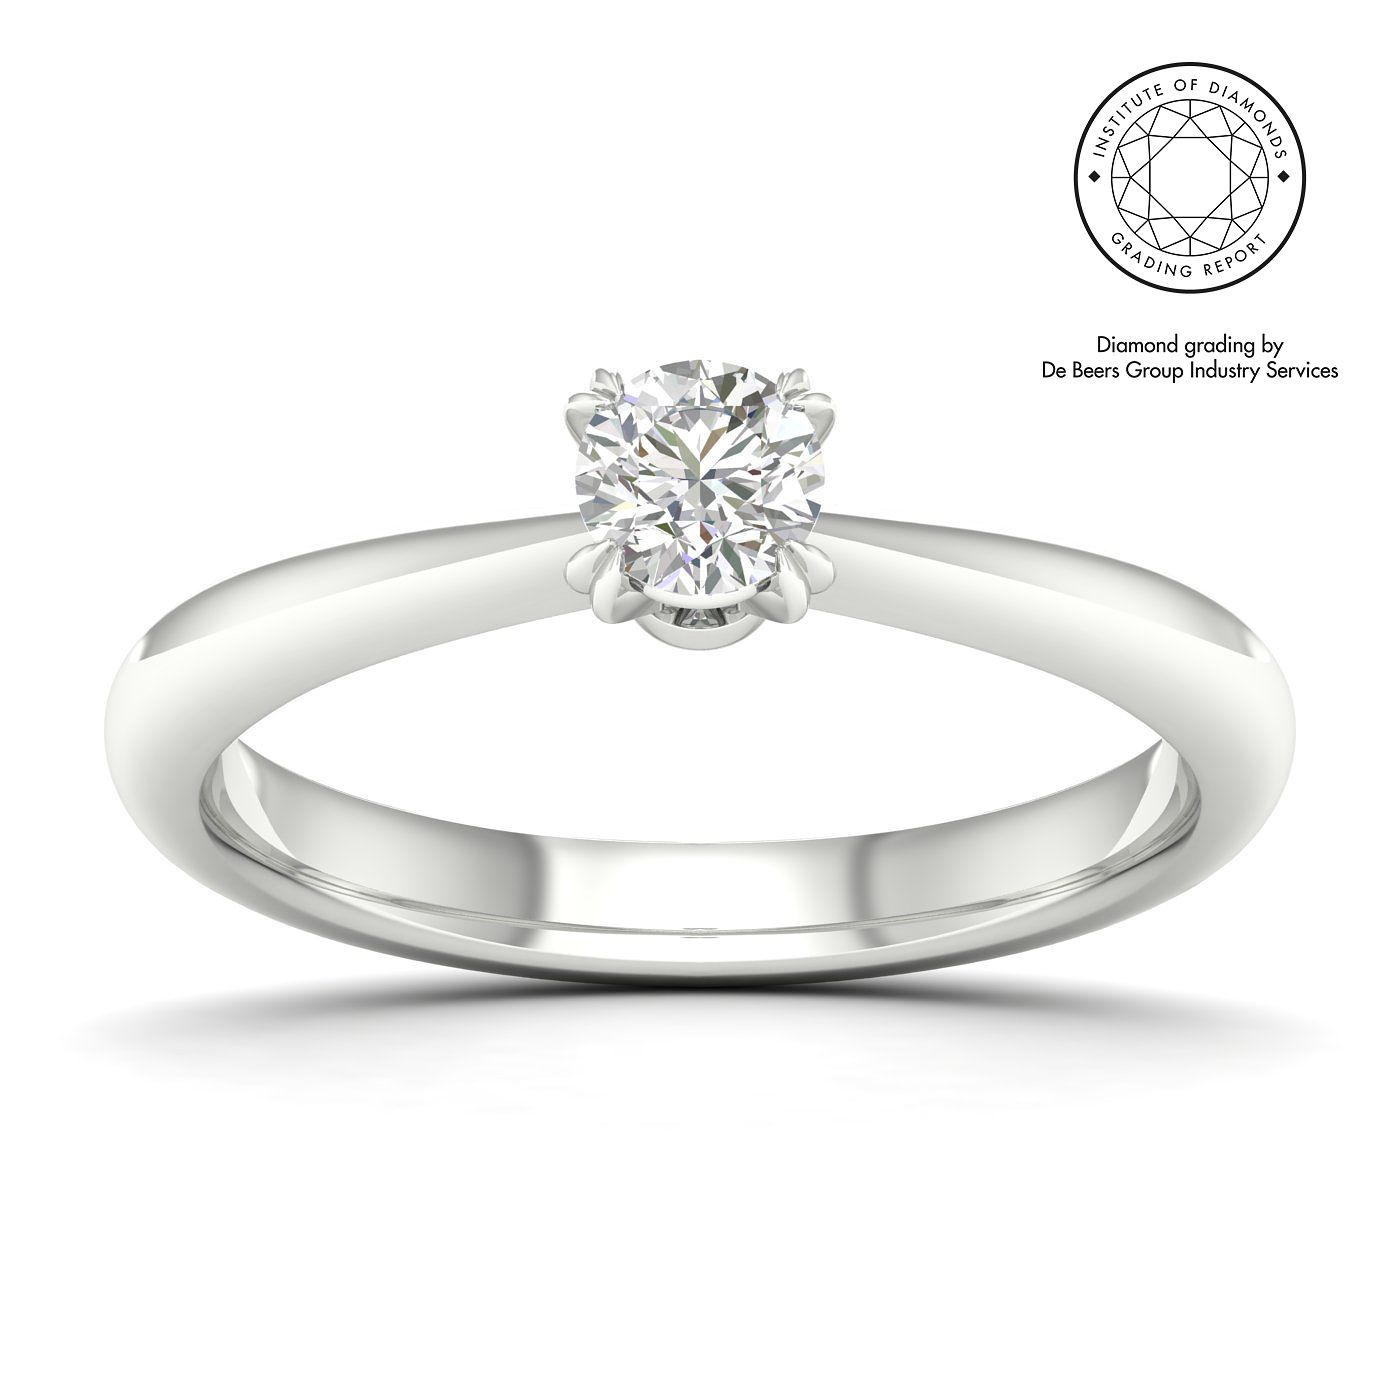 18ct White Gold & Platinum 0.30ct Diamond Solitaire Ring - Product number 2545993